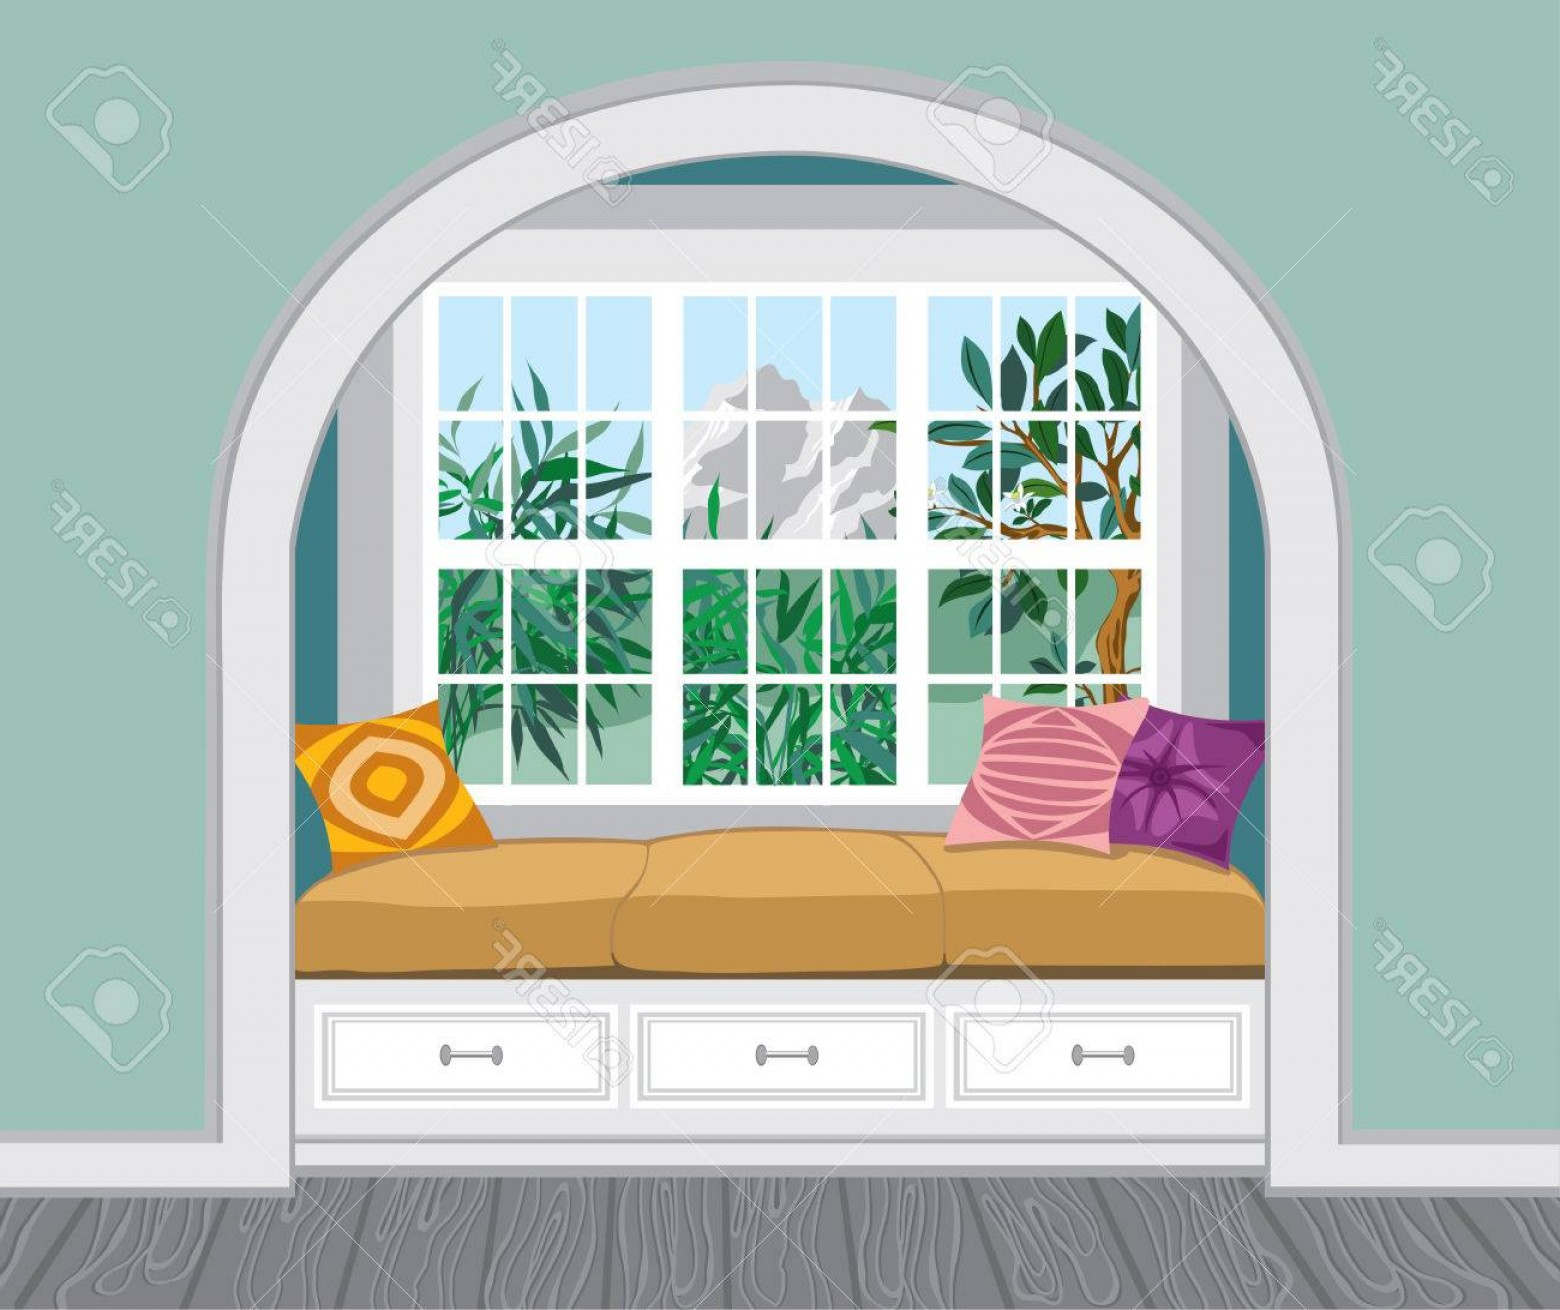 Amazing Window Vector: Photostock Vector A Window Seat With Padded Seat Storage Below The Amazing Mountains View Light Interior In A Classic